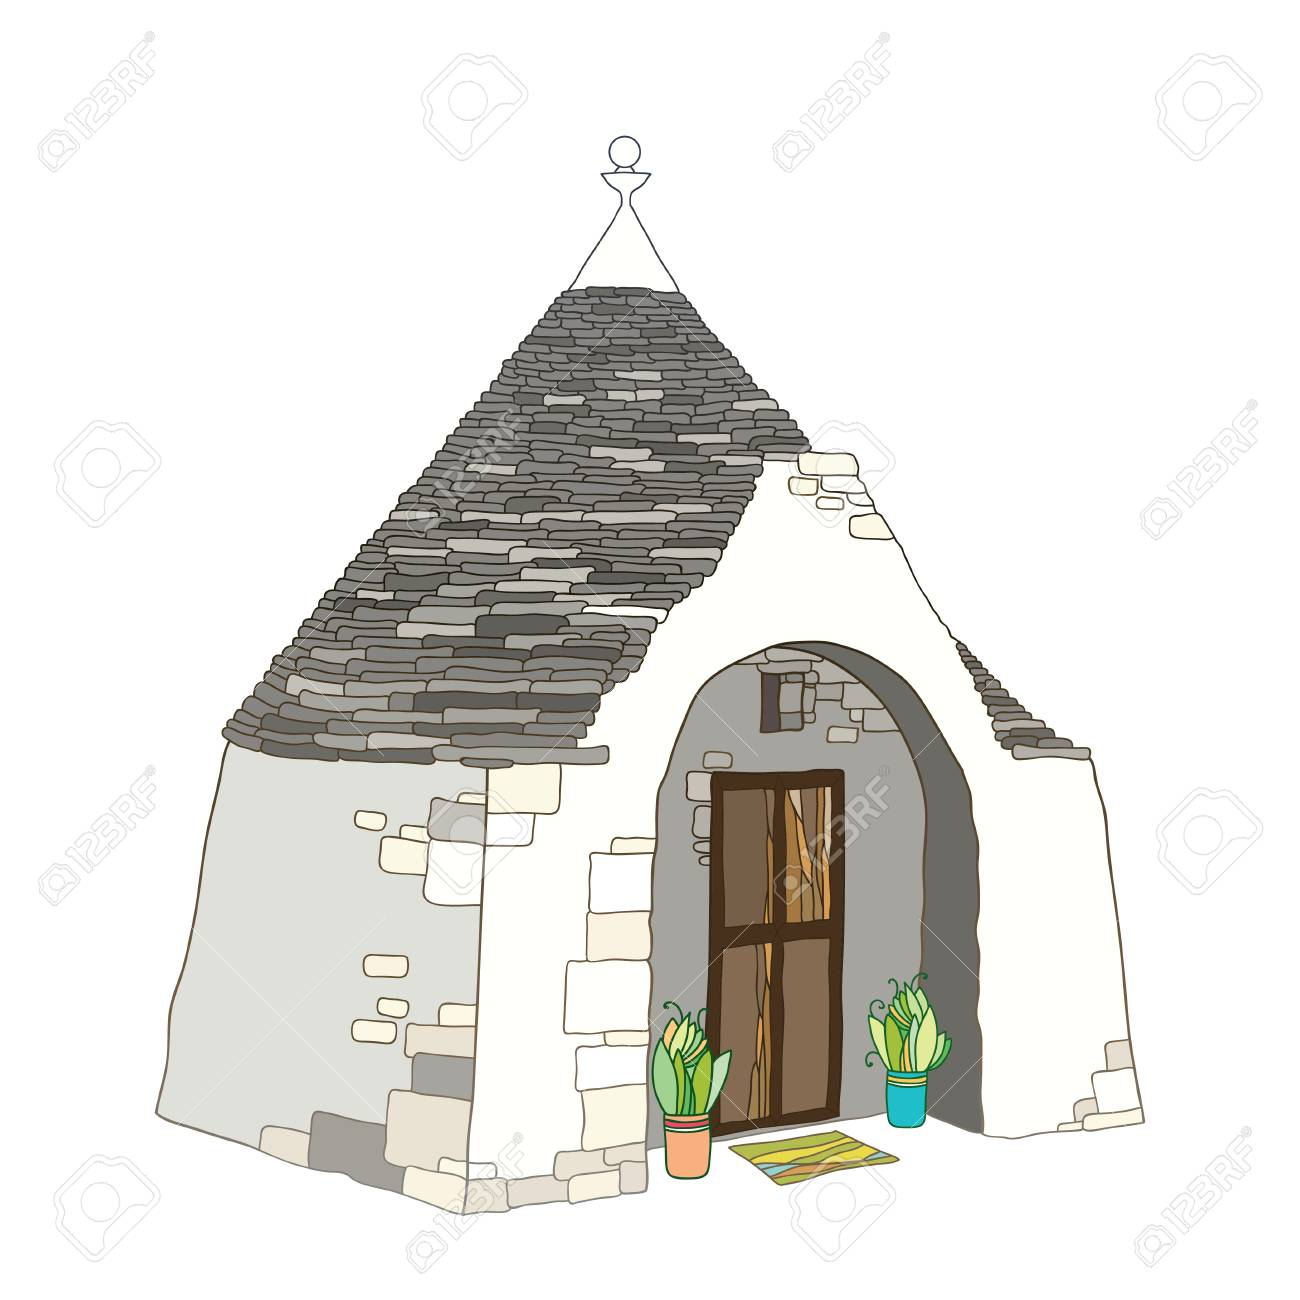 Outline drawing of Trulli or Trullo house with round conical roof in pastel colors isolated on white background. Ornate traditional Trulli of Alberobello in contour style. - 101073969